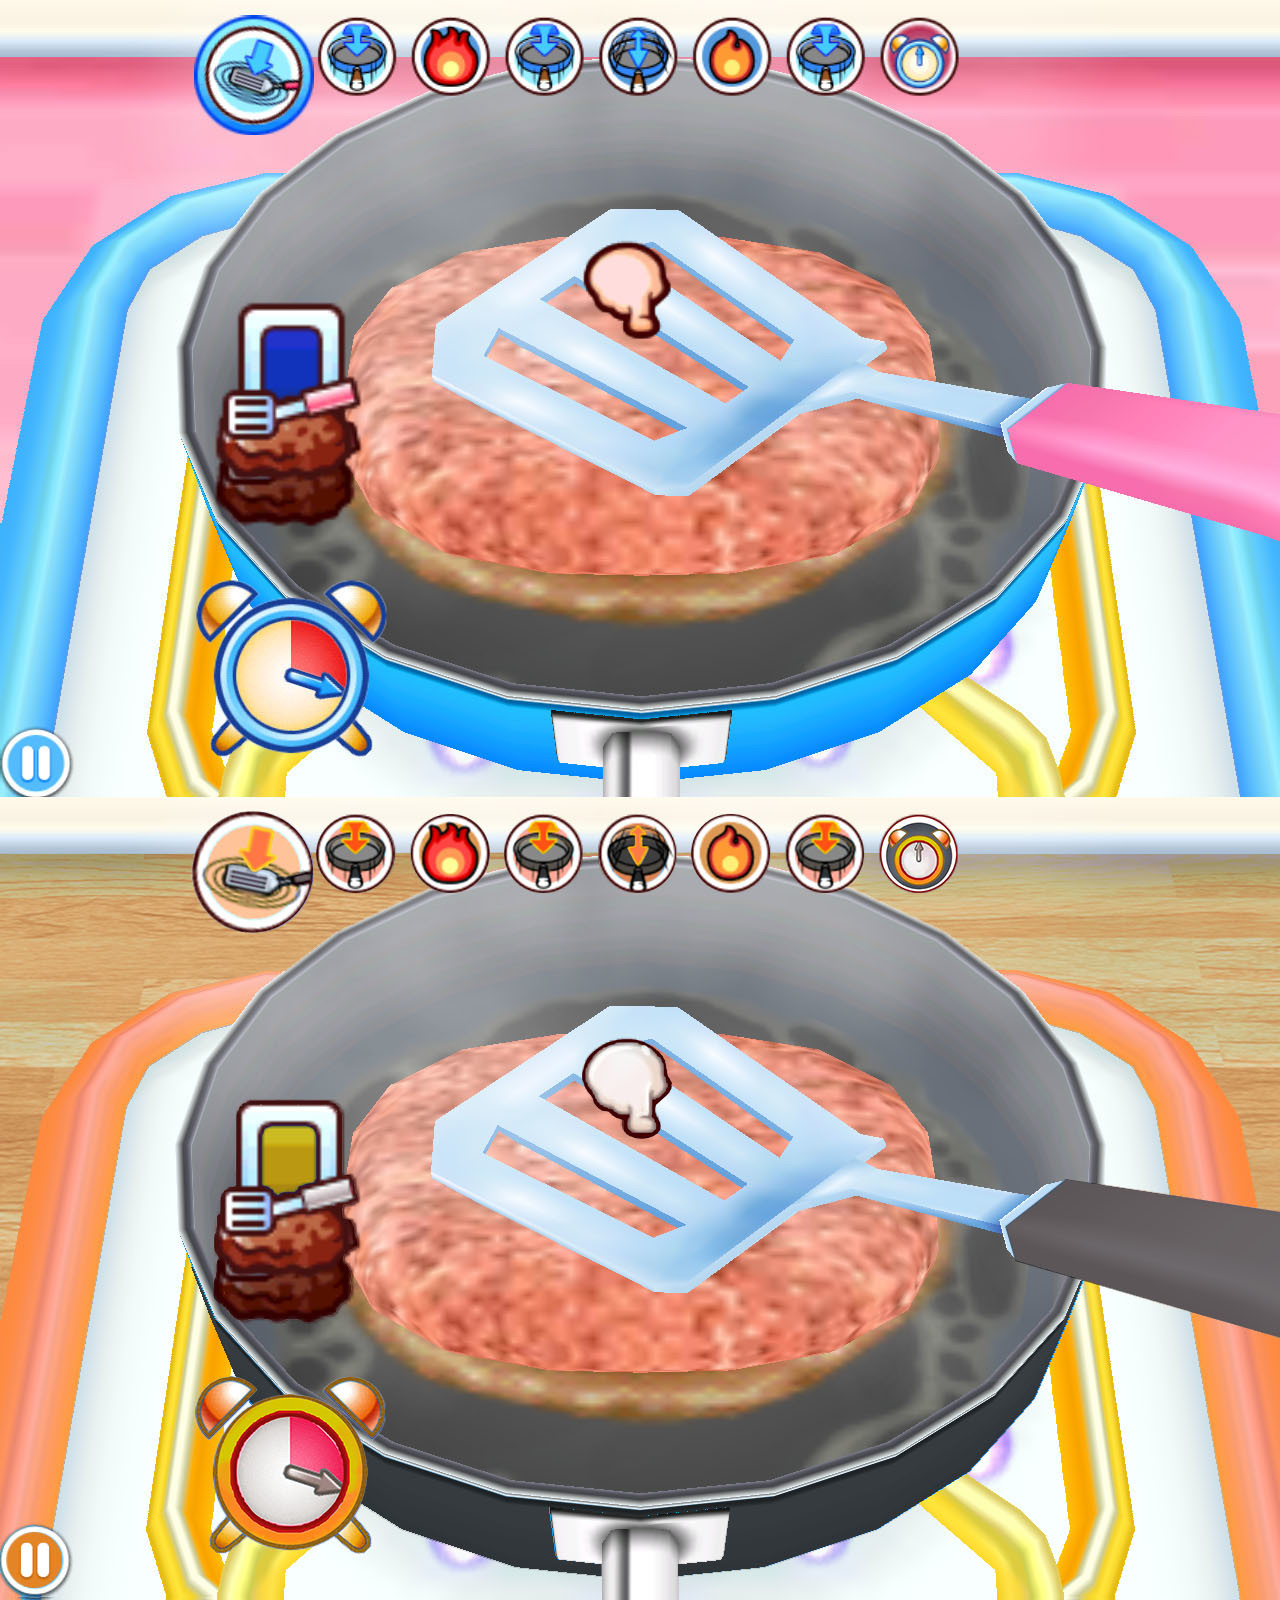 Cuisine Gameplay Alex T Cooking Mama Let Cook Masterchef Skin